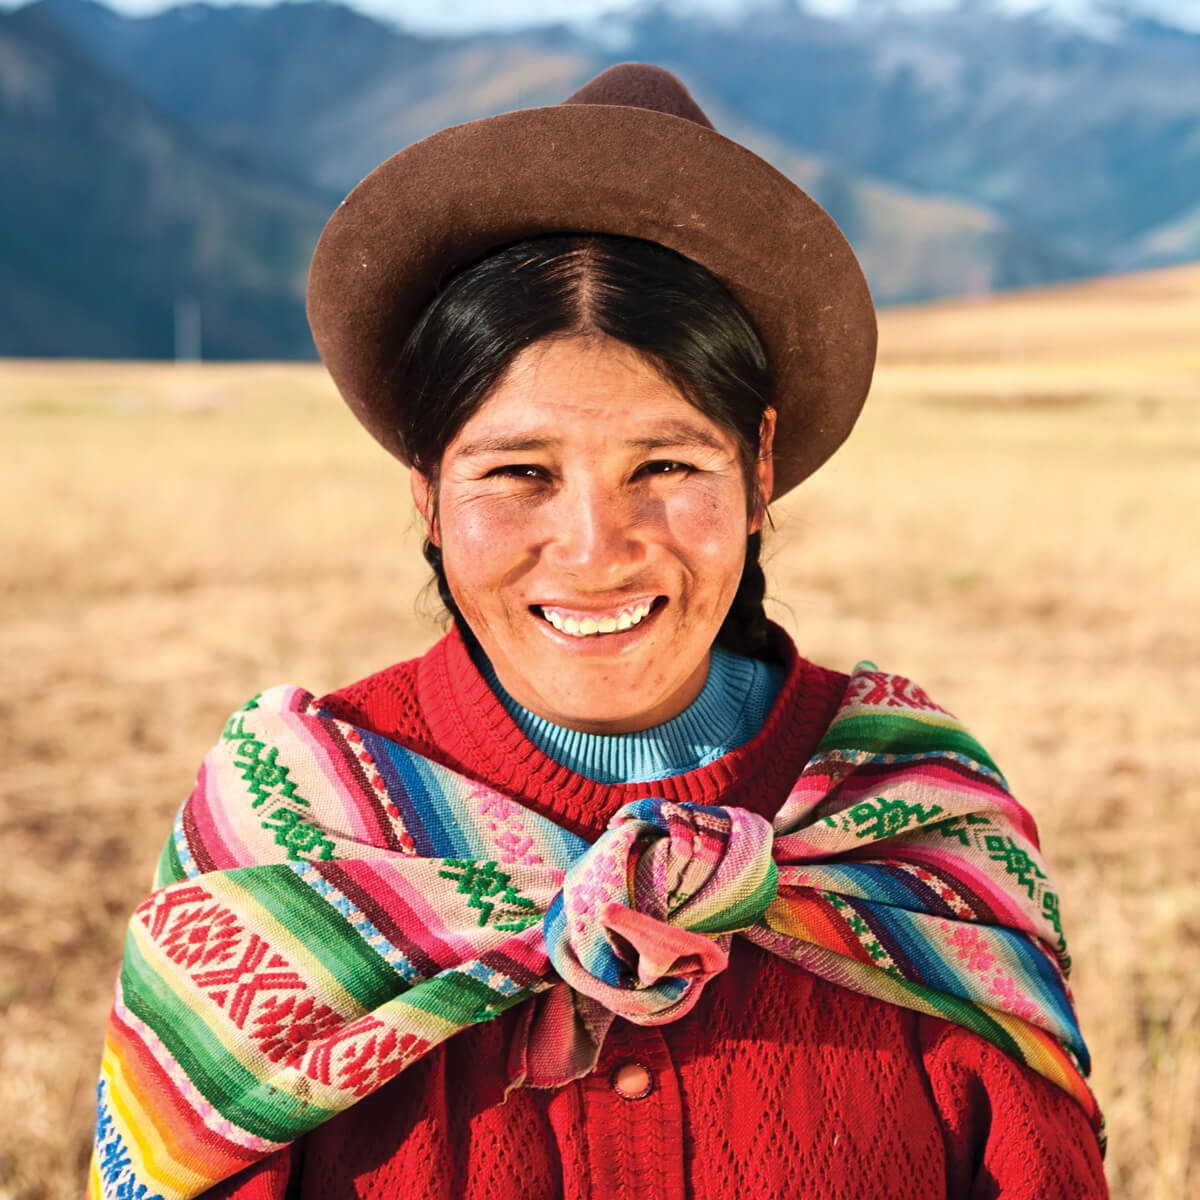 Portrait image of Peruvian woman